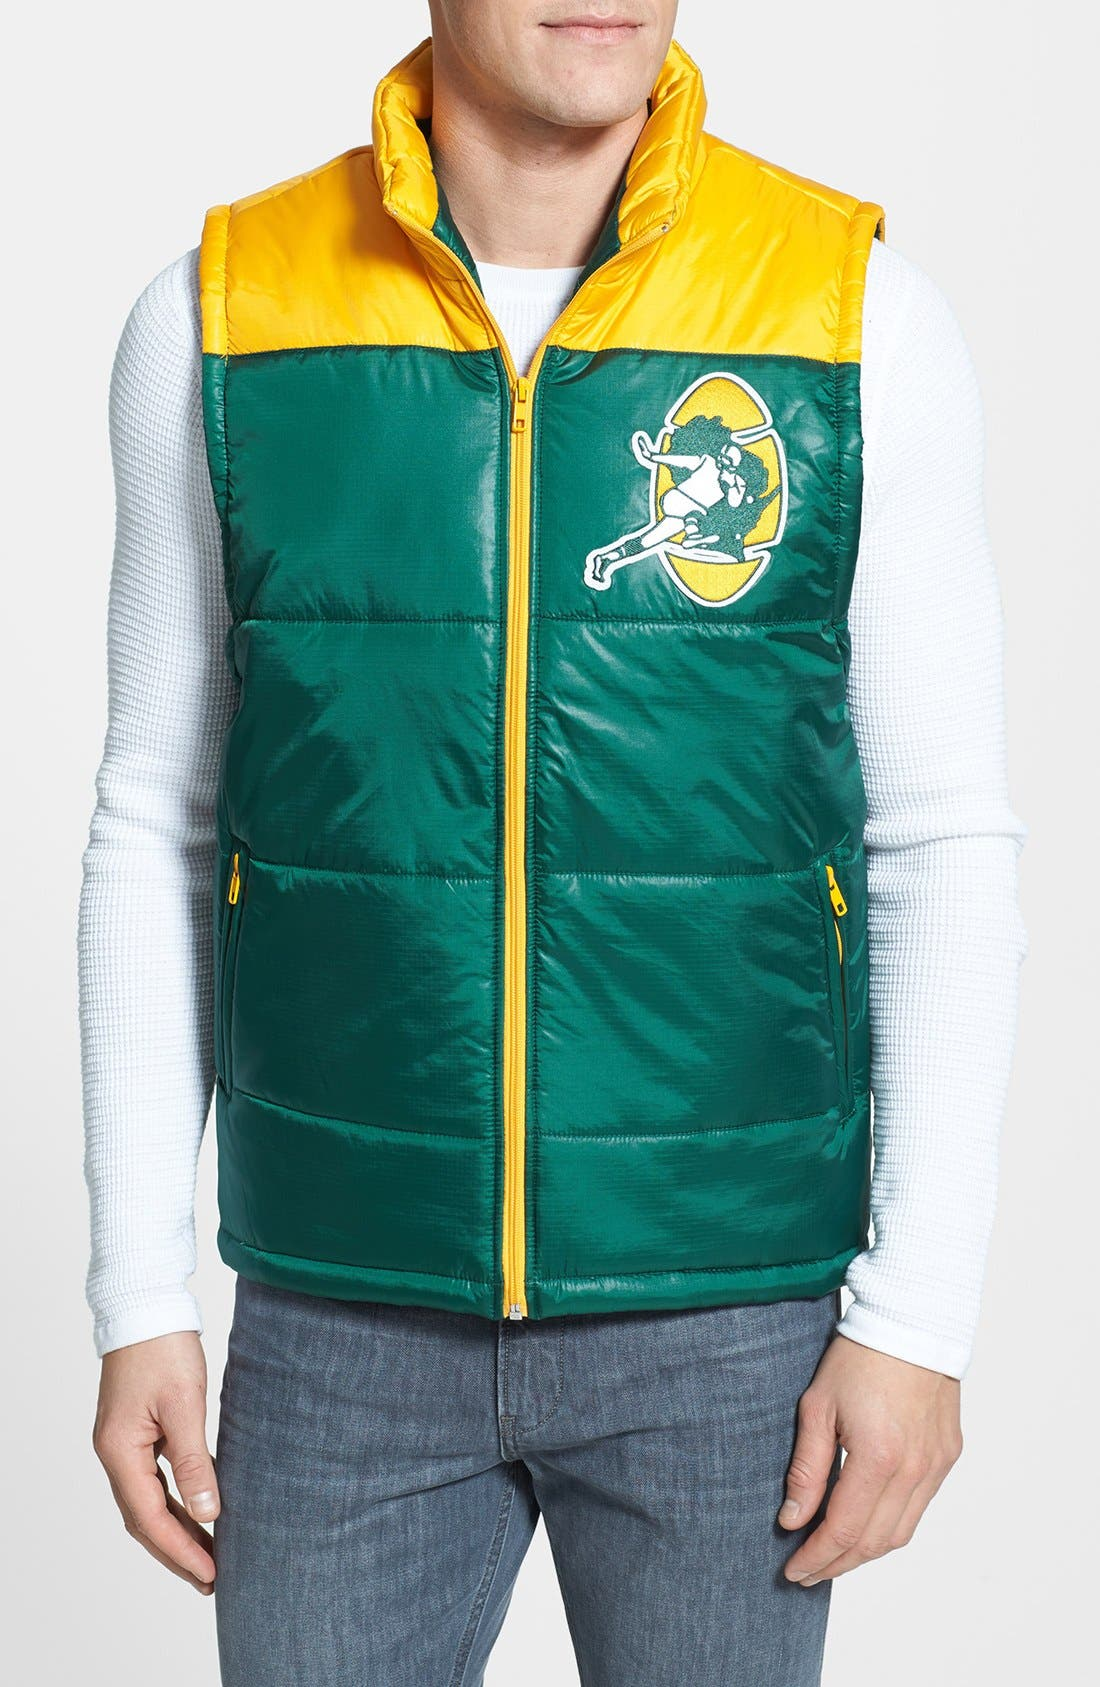 Alternate Image 1 Selected - Mitchell & Ness 'Winning Team - Green Bay Packers' Quilted Vest